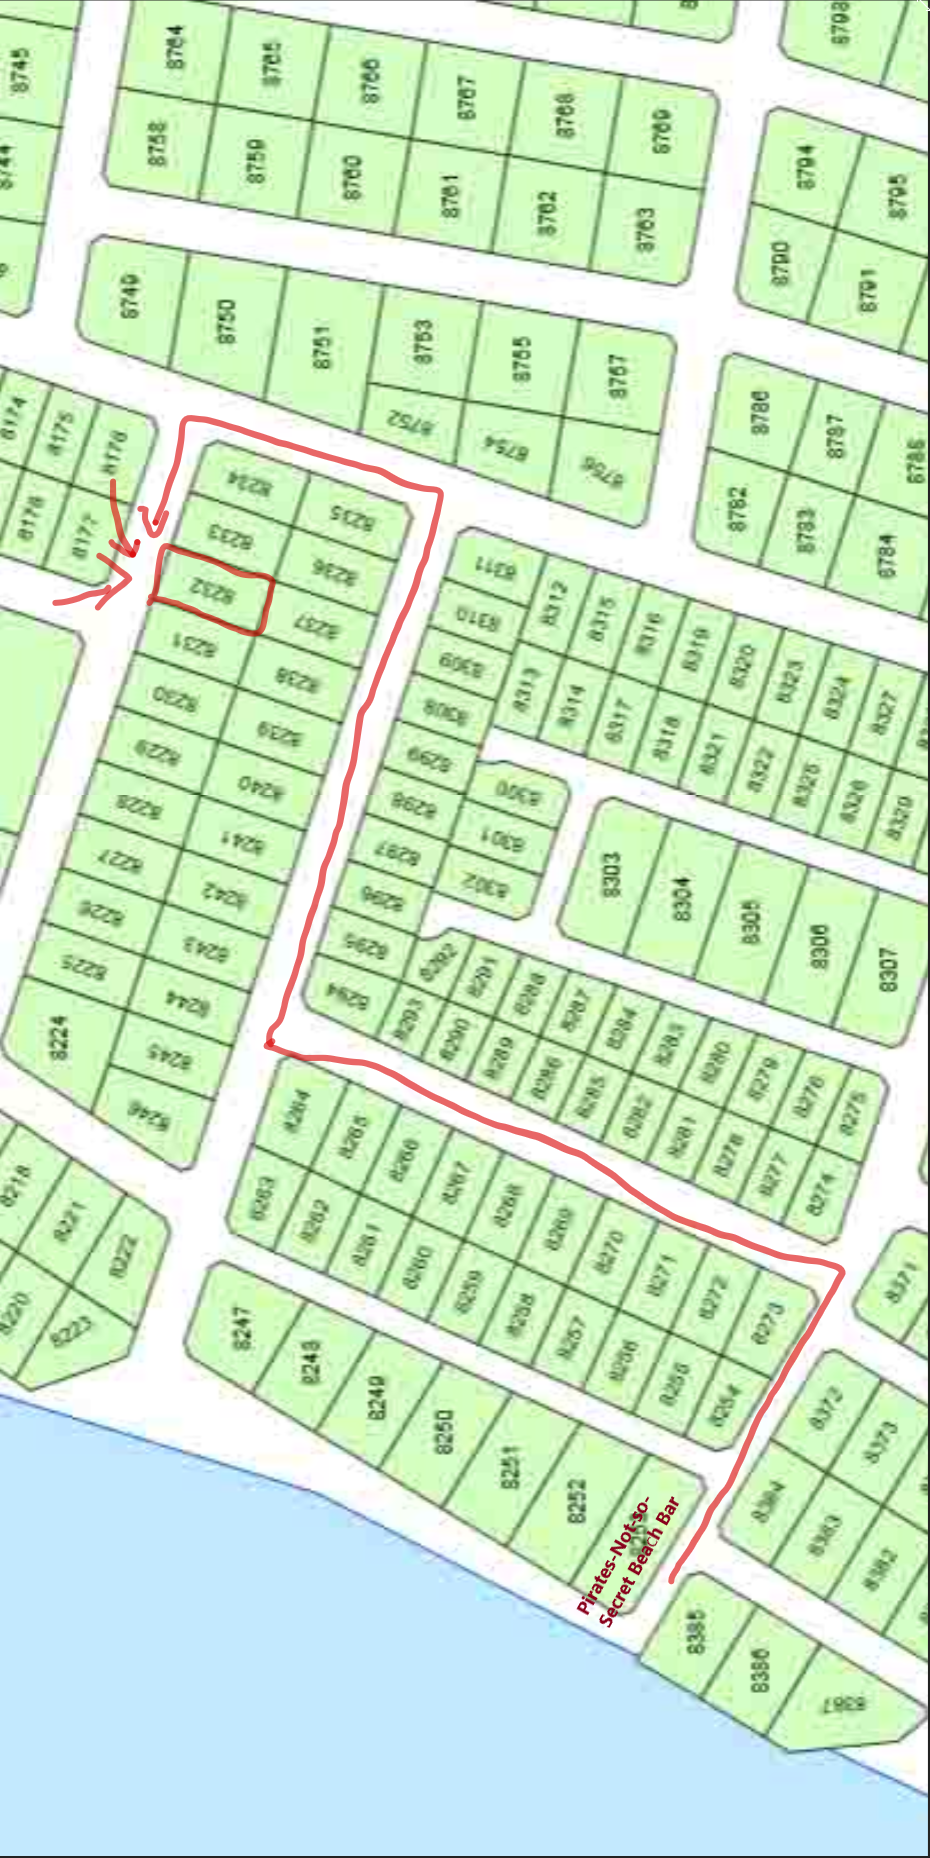 Property_v2/where-its-located-1.png